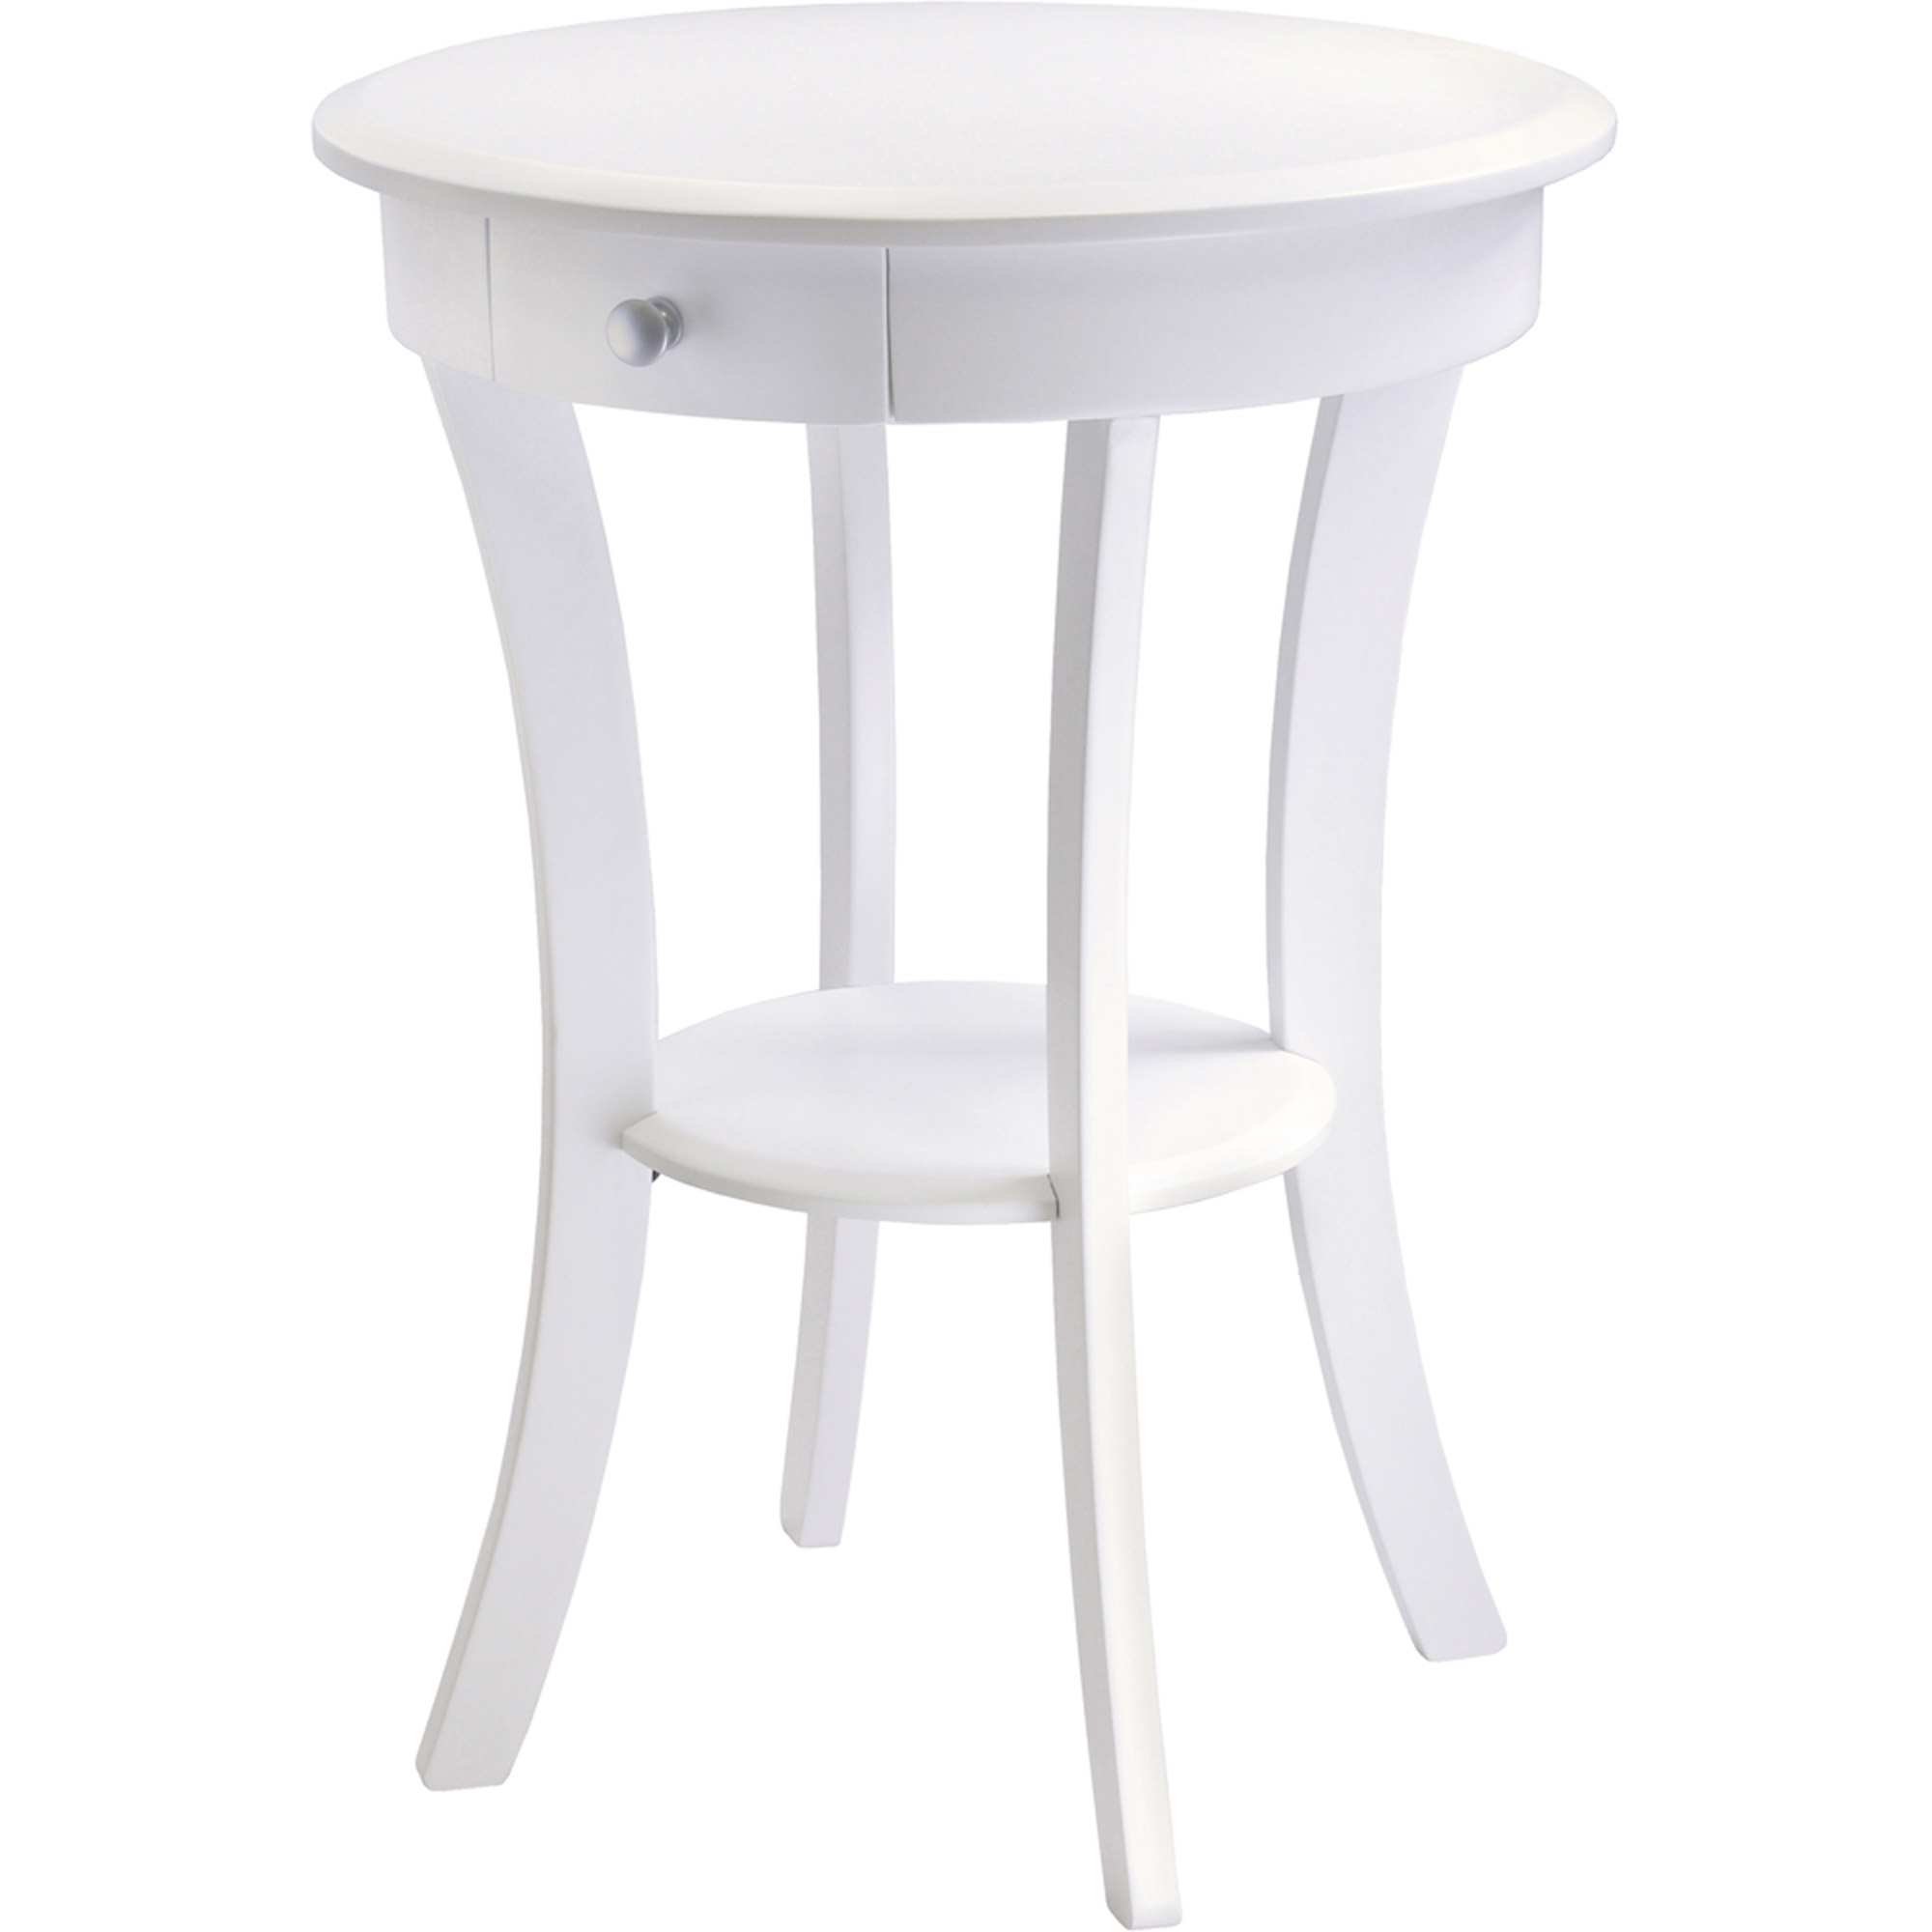 sasha round accent table white tables living room inch deep console pier one outdoor unique bedside home decor accessories natural lamp lamps ashley rocker recliner small red